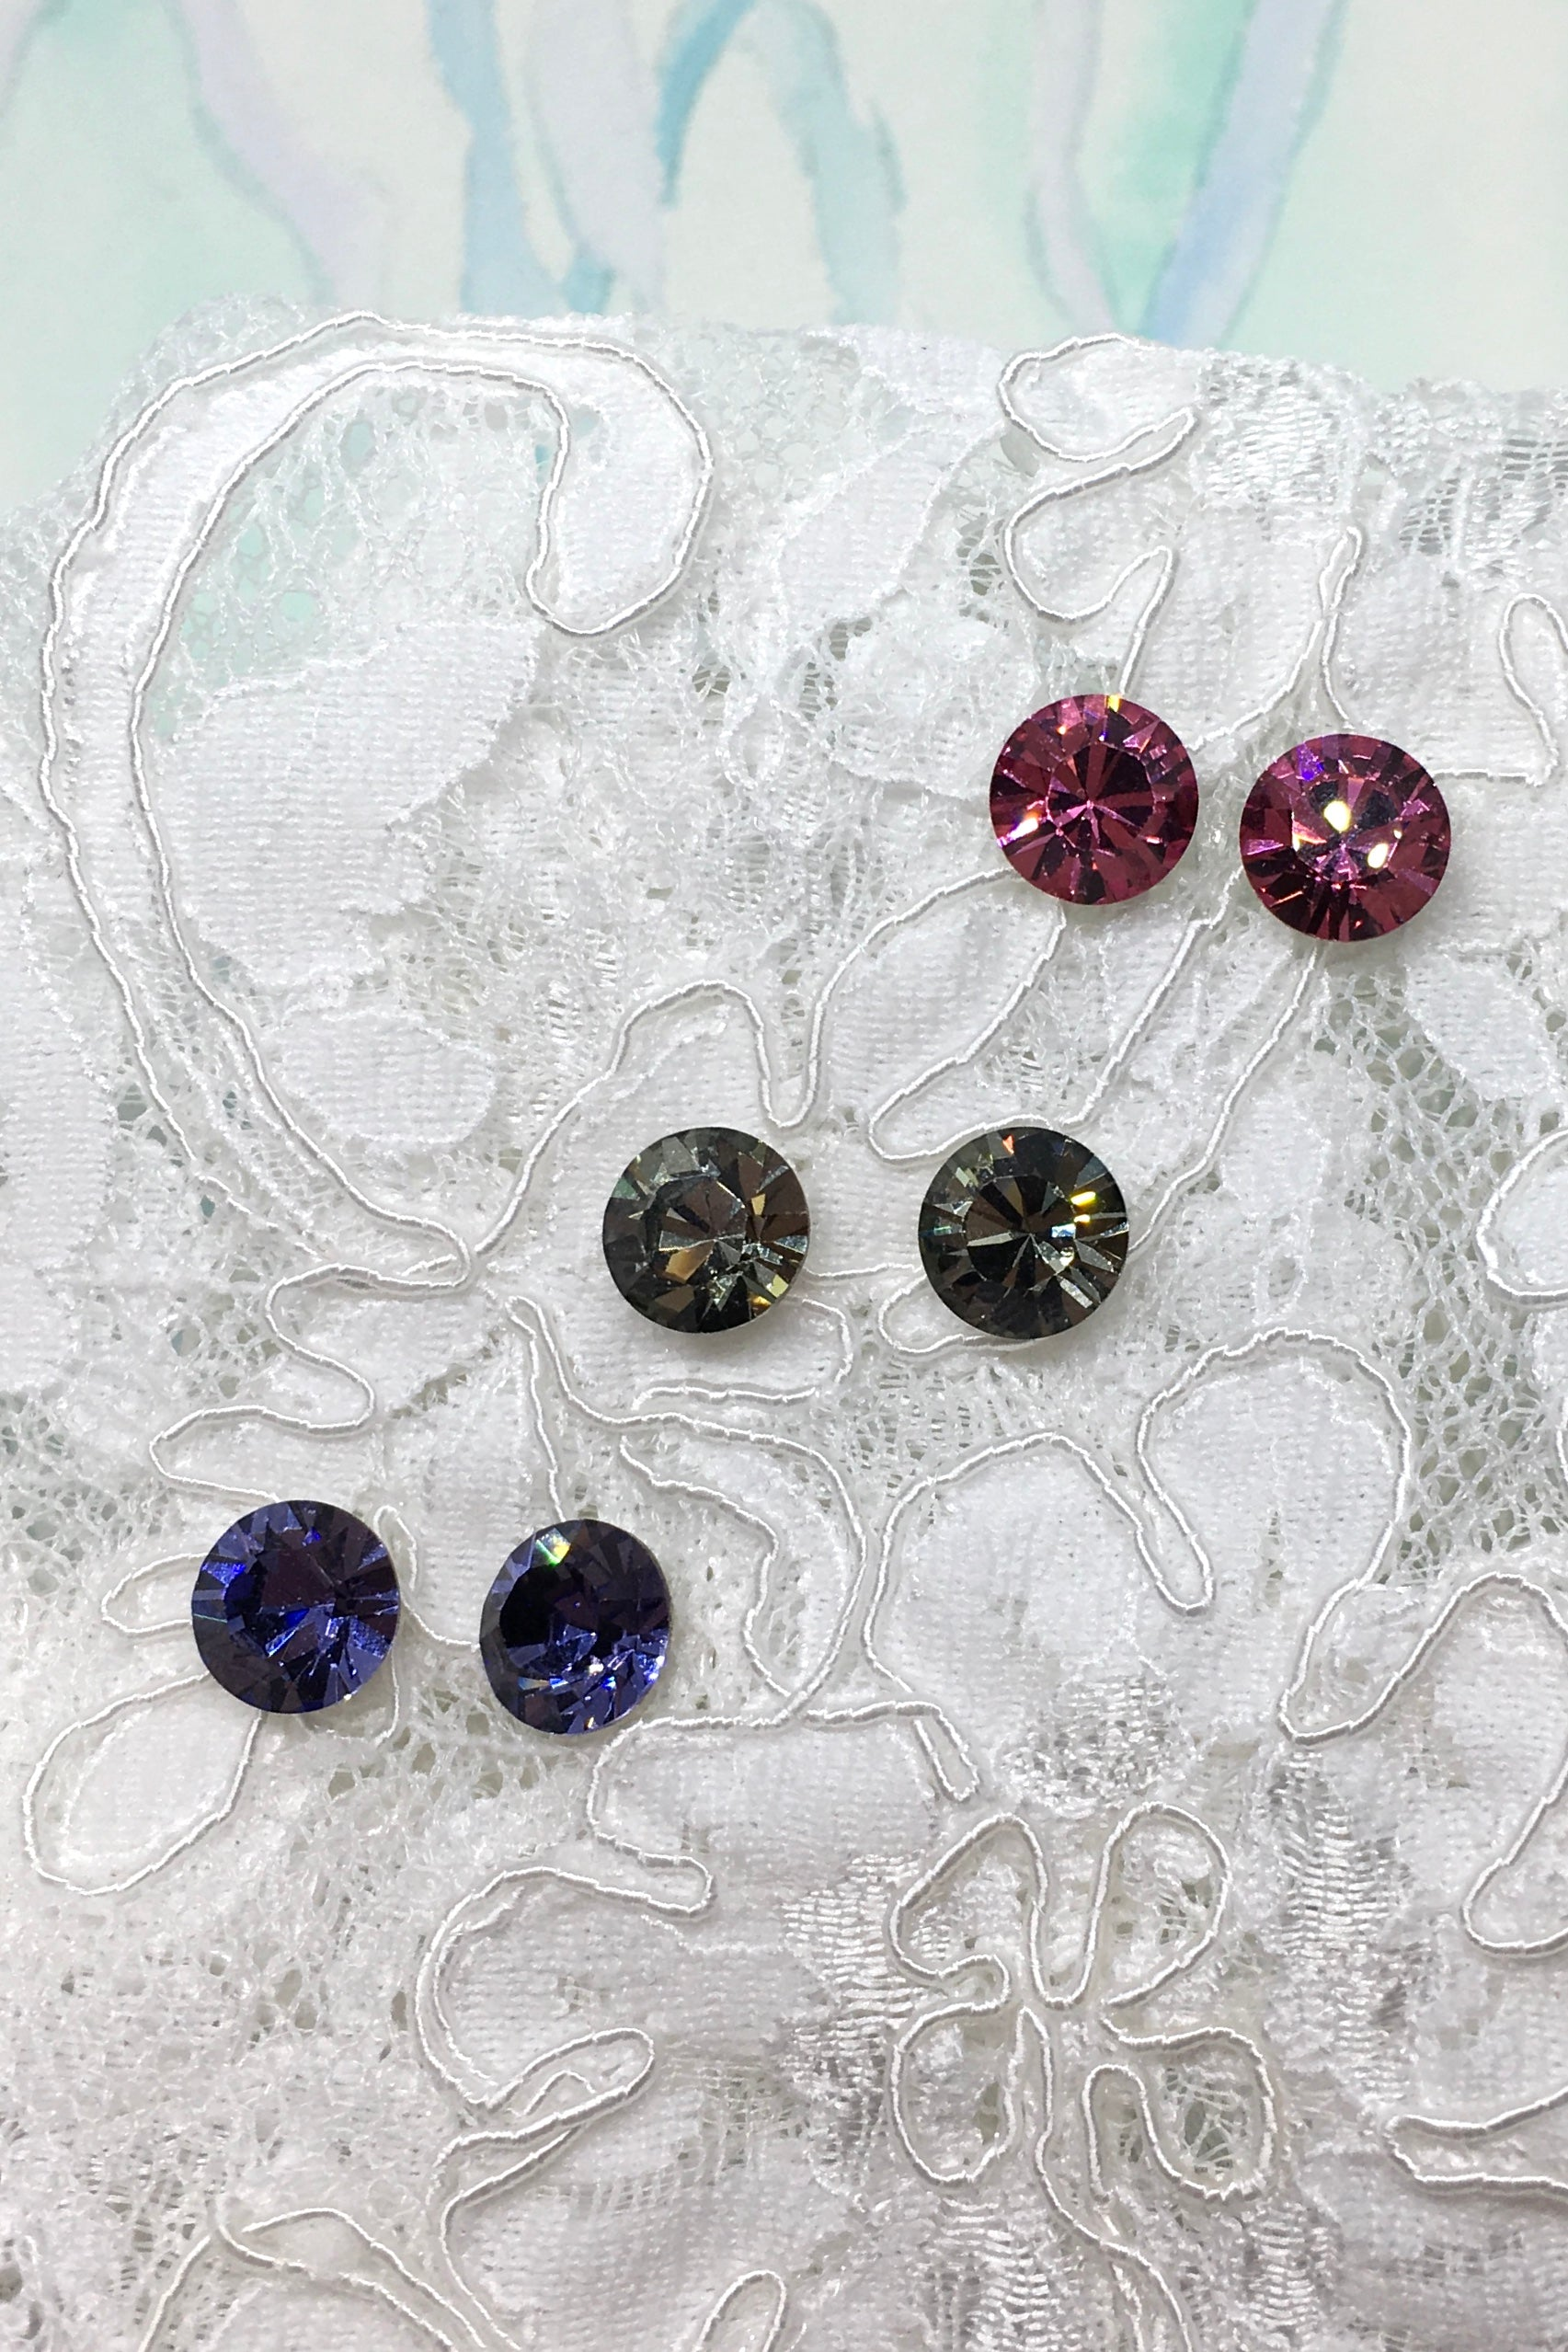 Earrings Crystal Stud in Pink, Smoky grey or Tanzanite Mauve, wedding style jewellery